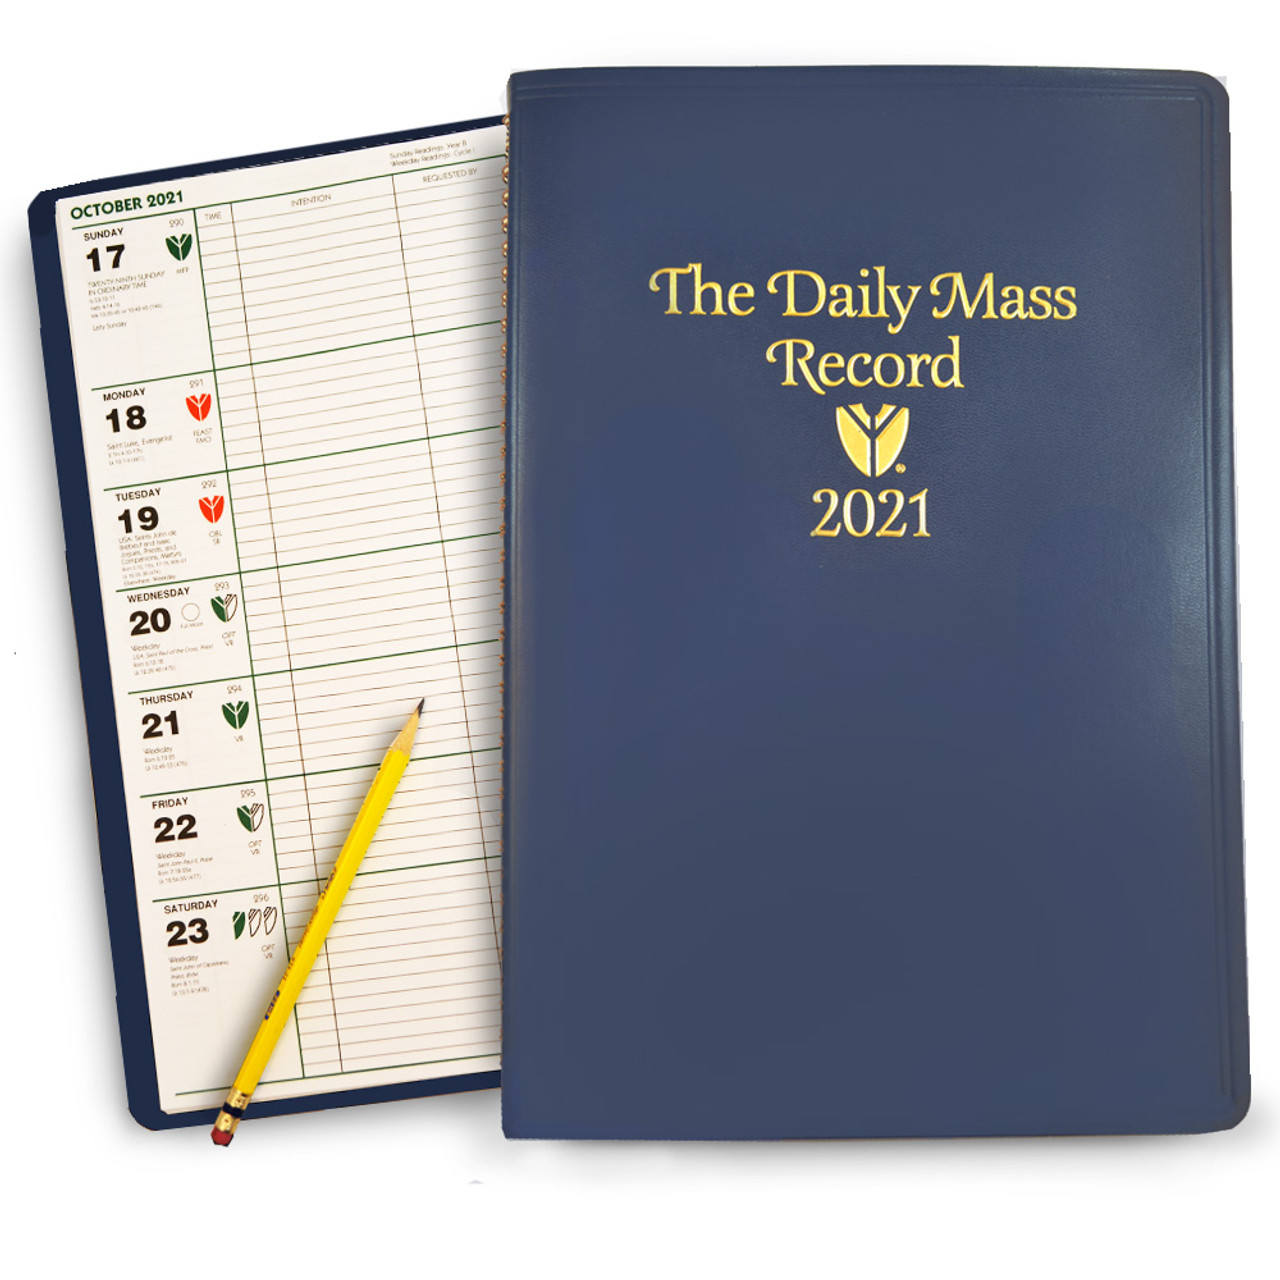 Daily Mass Record Book 2021